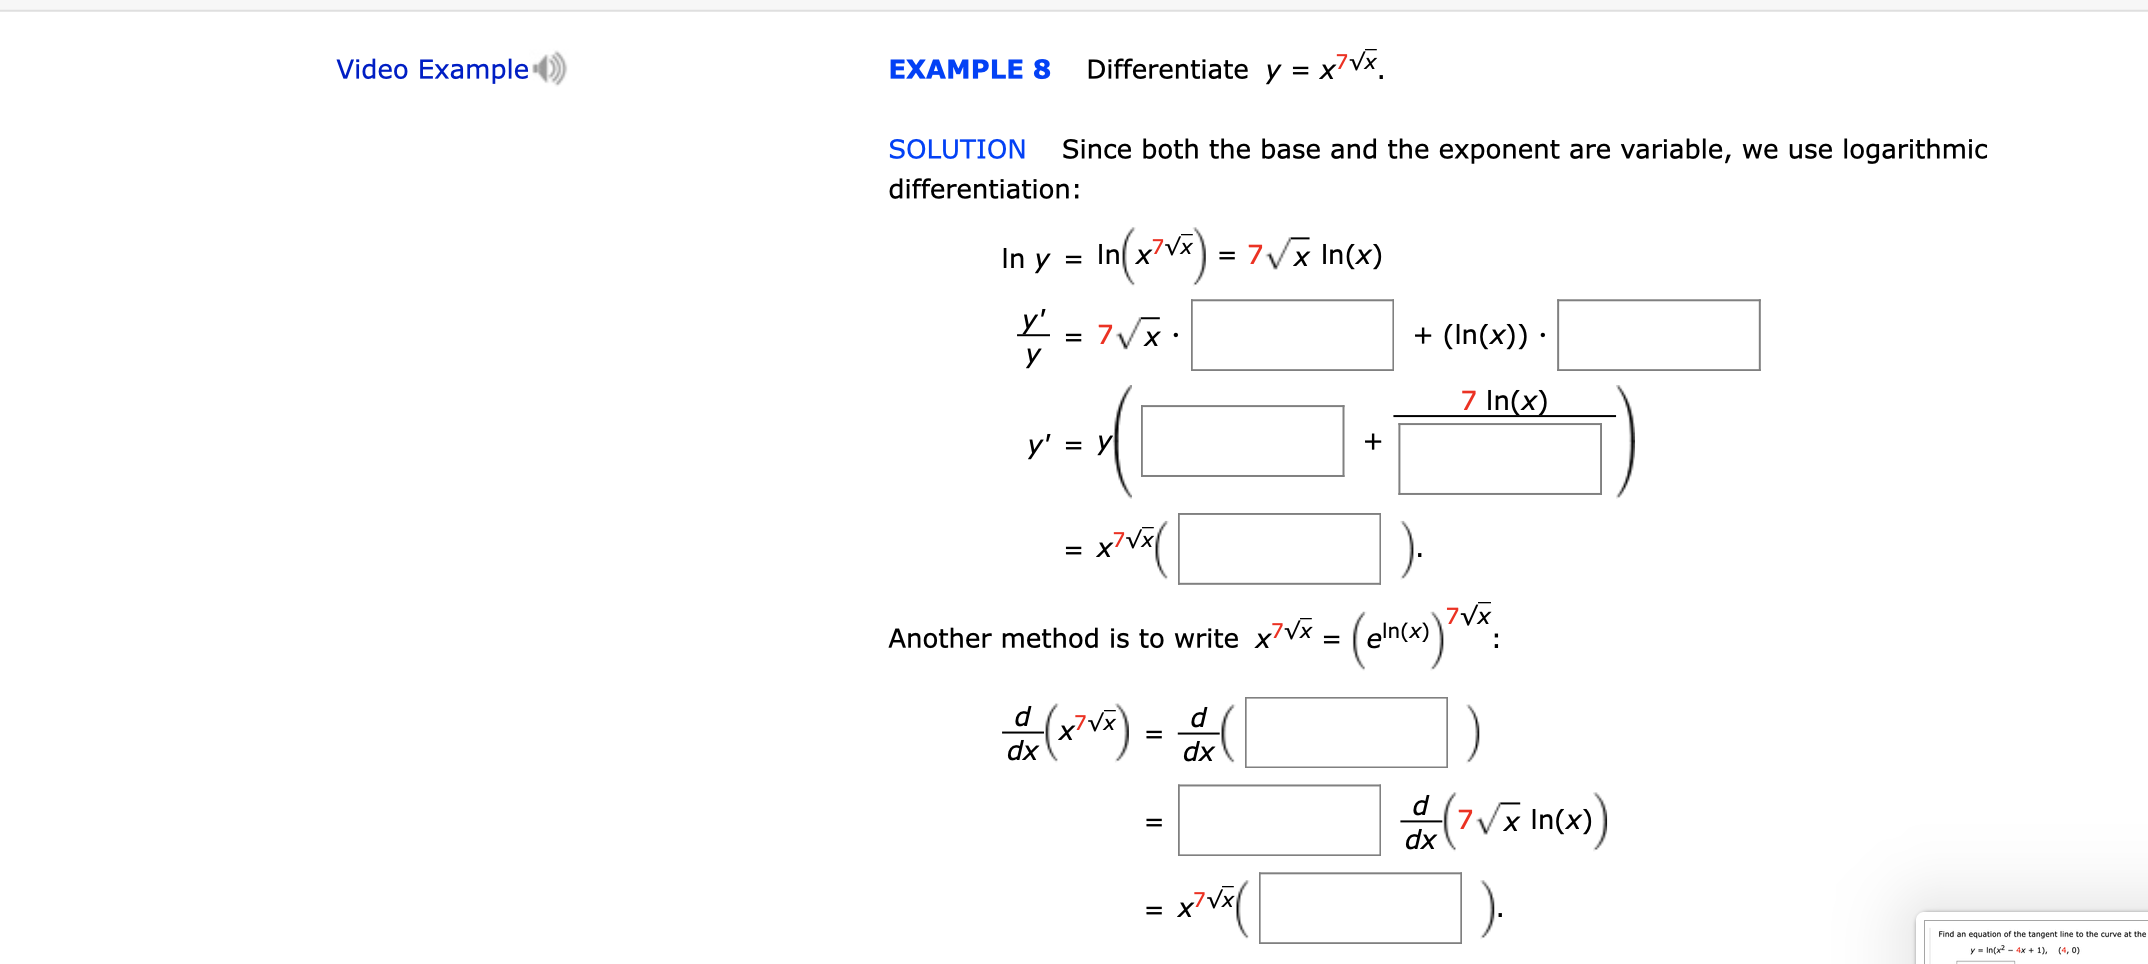 Video Example Differentiate y = x7Vx EXAMPLE 8 Since both the base and the exponent are variable, we use logarithmic SOLUTION differentiation: In(2)7 7Vx In(x) In y = y' 7VX У (In(x)) 7 In(x) у' %3D У x'Vx 7VX eln(x) Another method is to write x7Vx = d d dx dx d 7x In(x) dx x7Vx = yIn(x2-4x +1), (4, 0)